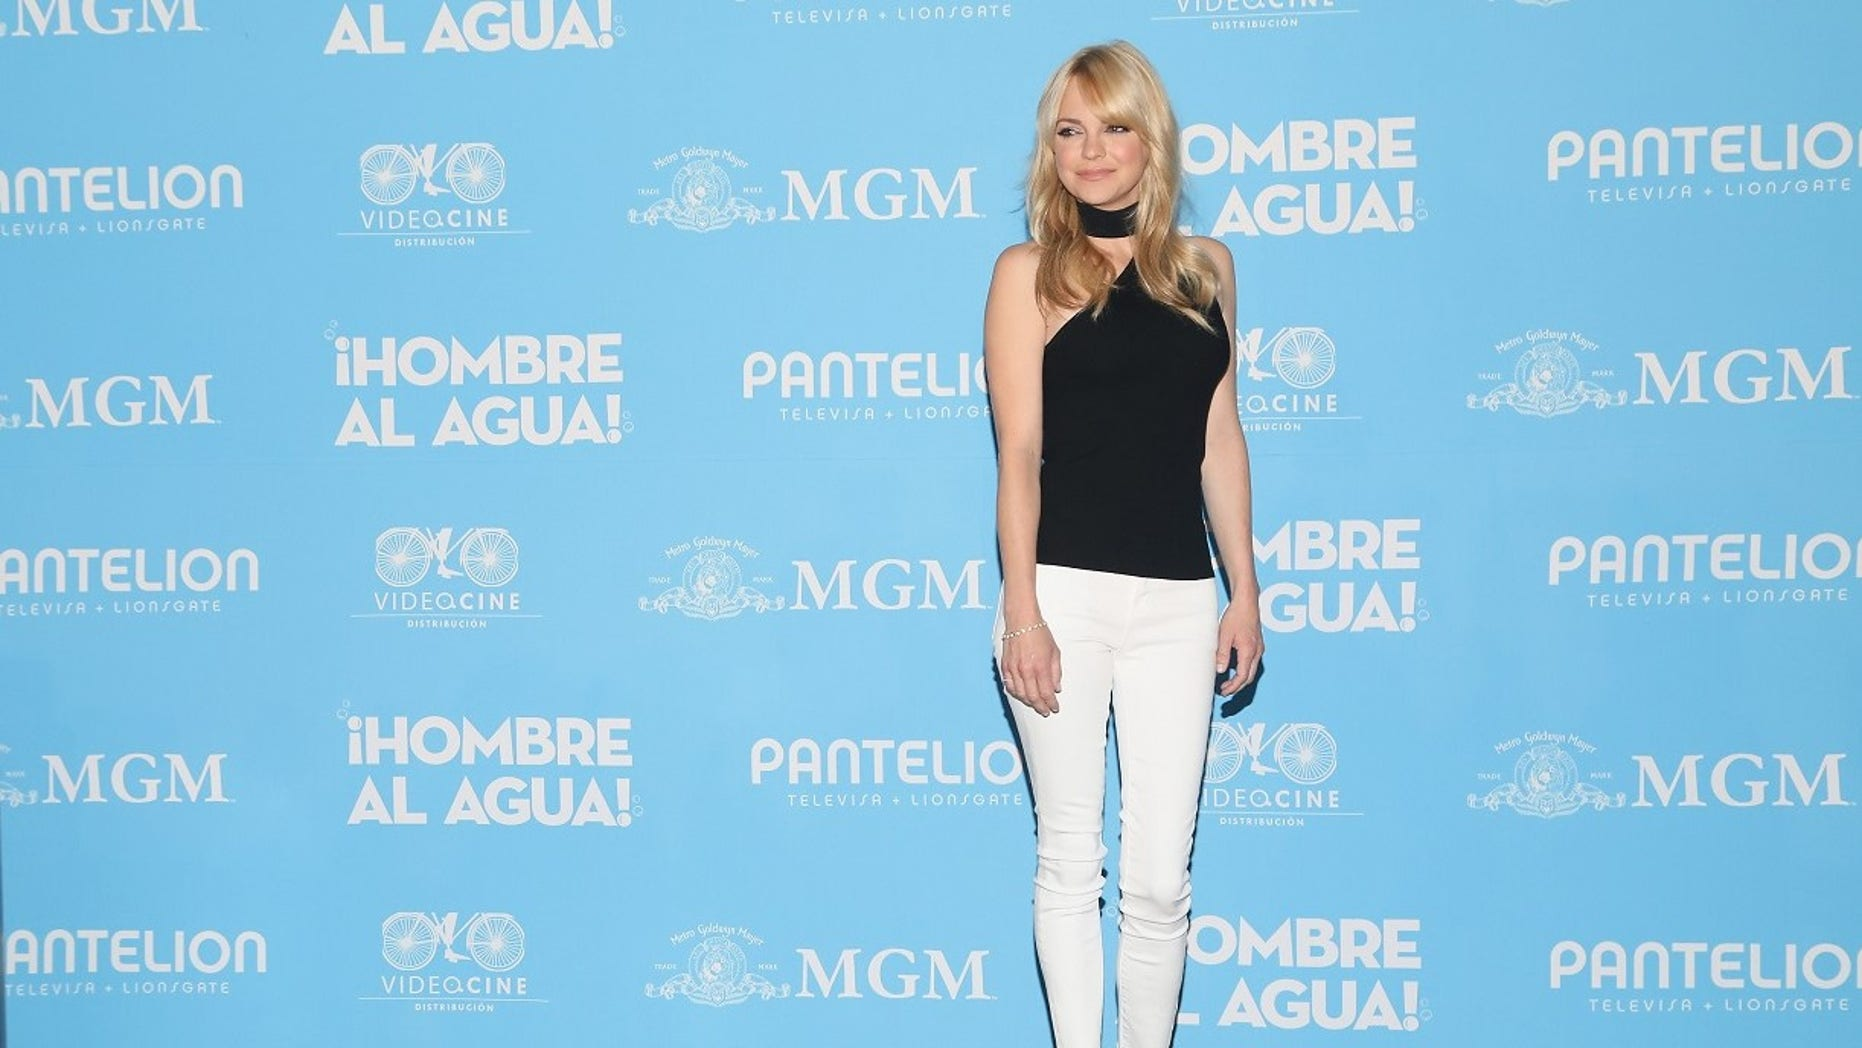 Anna Faris was body-shamed after she posted a photo sans pants on Instagram that was deleted shortly after.